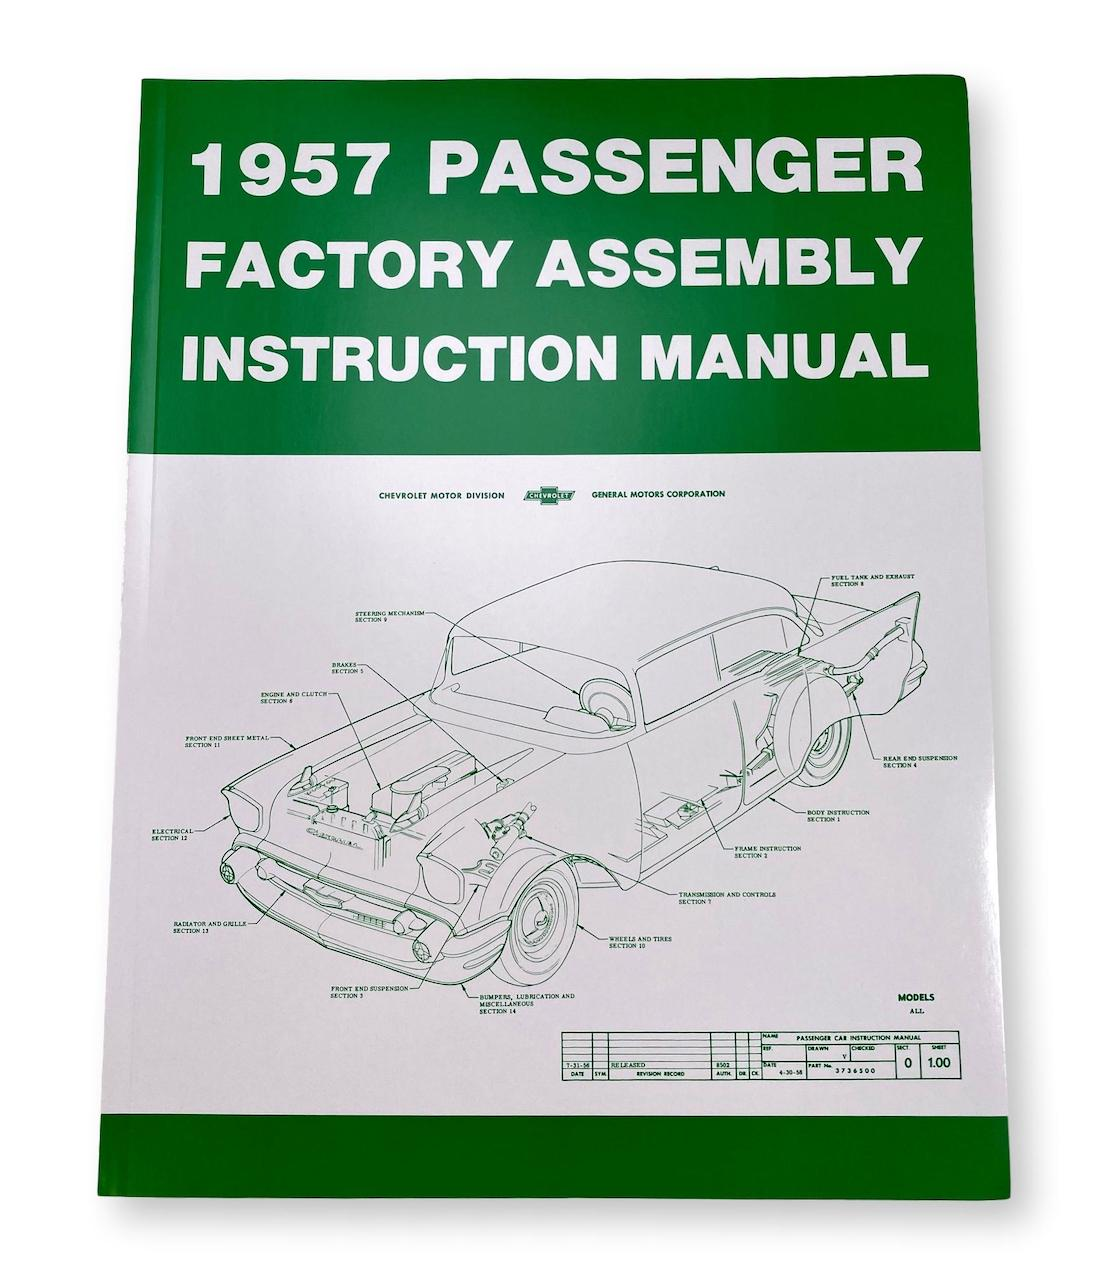 1957 Chevy Factory Assembly Manual